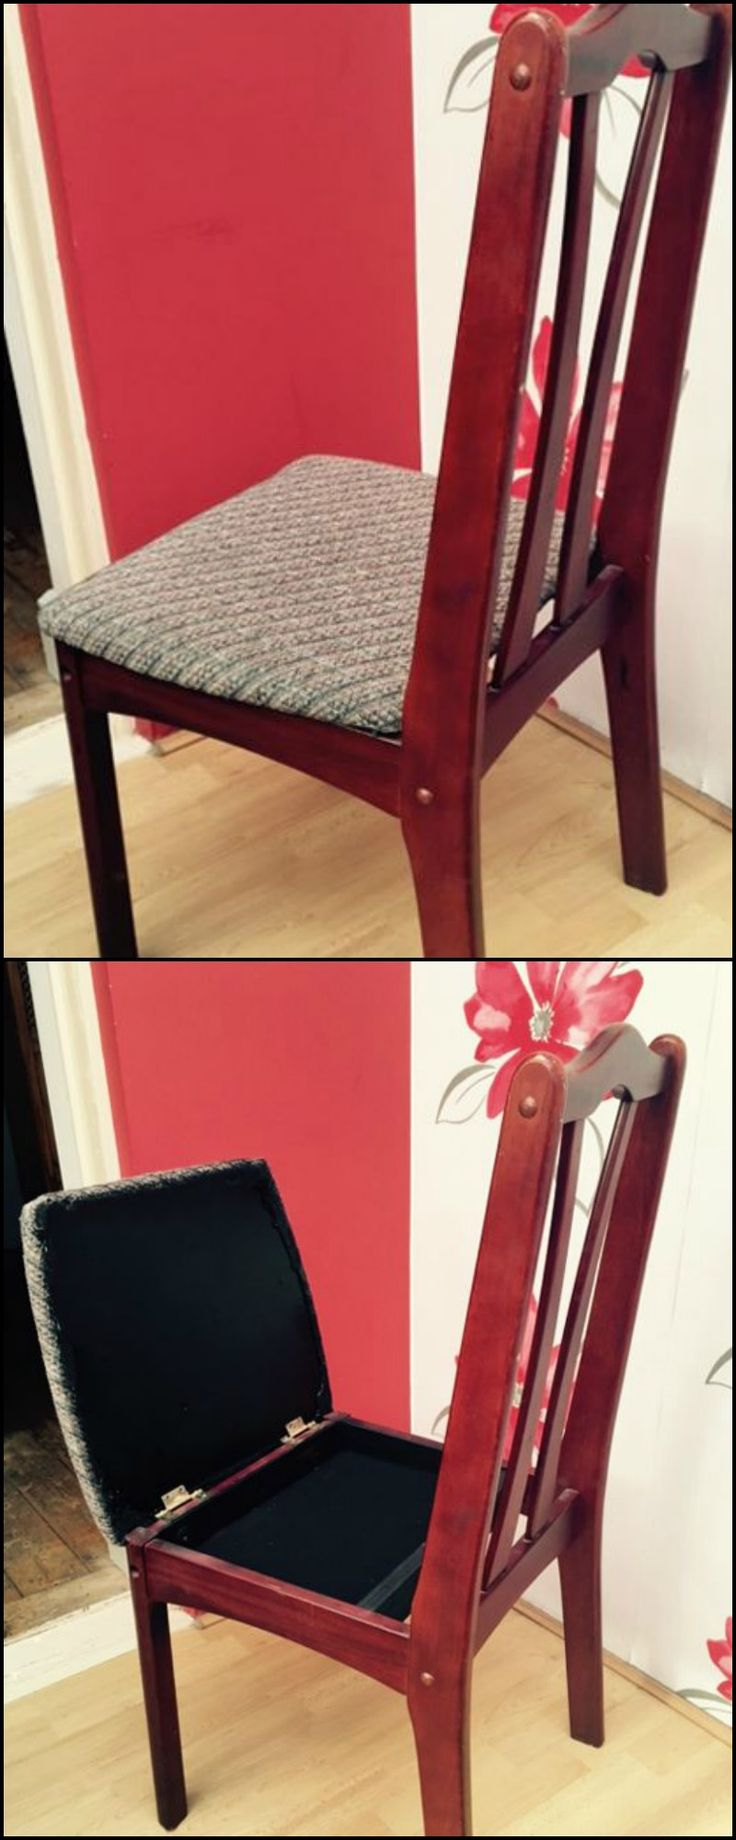 Make This Easy Hidden Compartment in Any Chair!